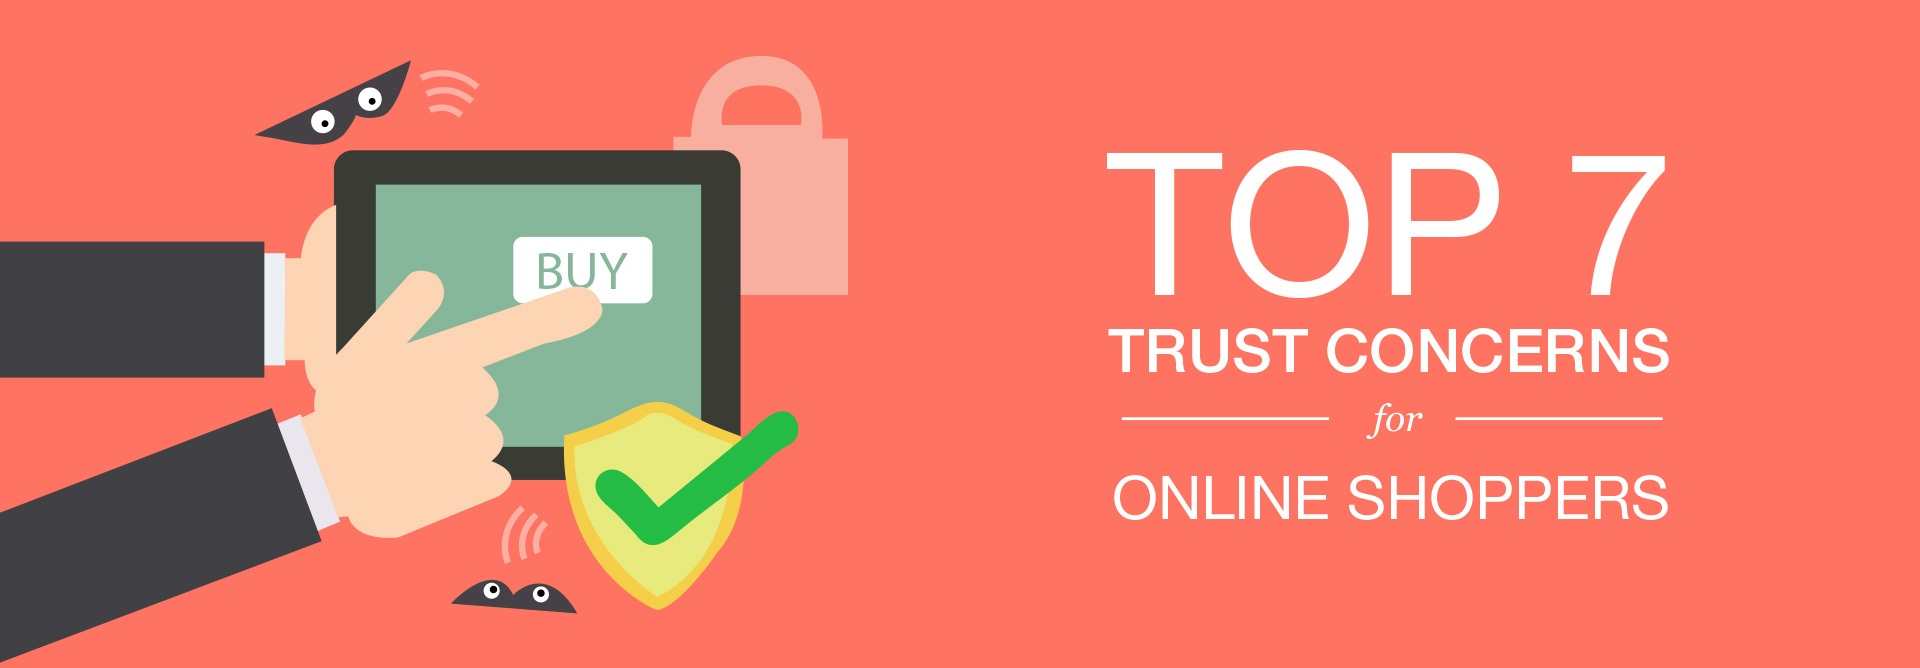 Top 7 Trust Concerns for Online Shoppers